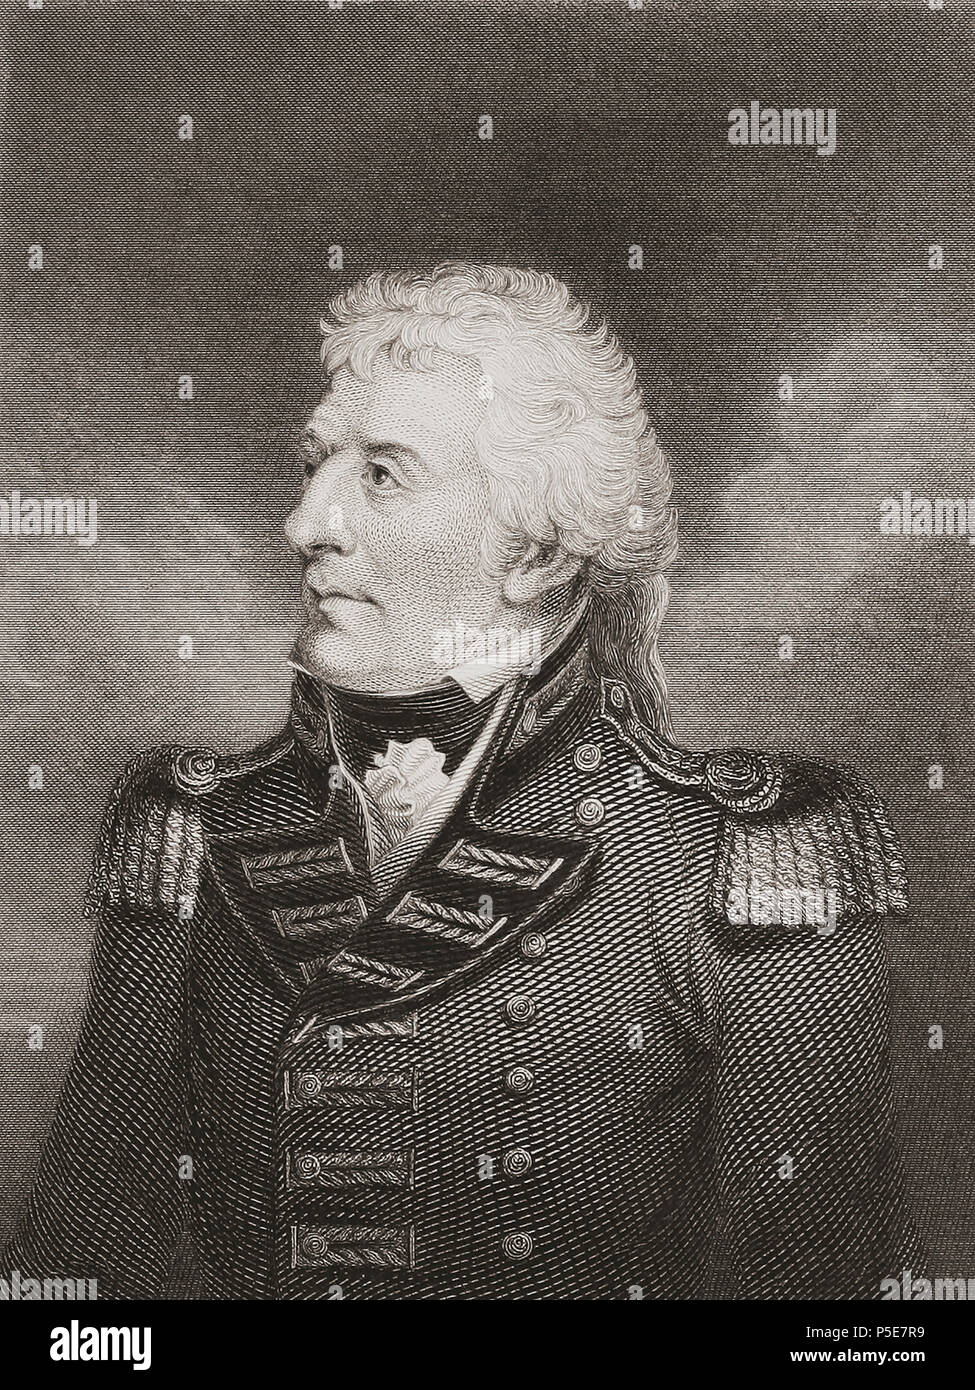 Gerard Lake, 1st Viscount Lake, 1744 – 1808. Commander British forces in Irish Rebellion 1798, Commander-in-Chief of military in British India, member of Parliament.  From History of the Irish Rebellion in 1798; with Memoirs of the Union, and Emmett's Insurrection in 1803 by W.H. Maxwell. Published in London 1854. - Stock Image